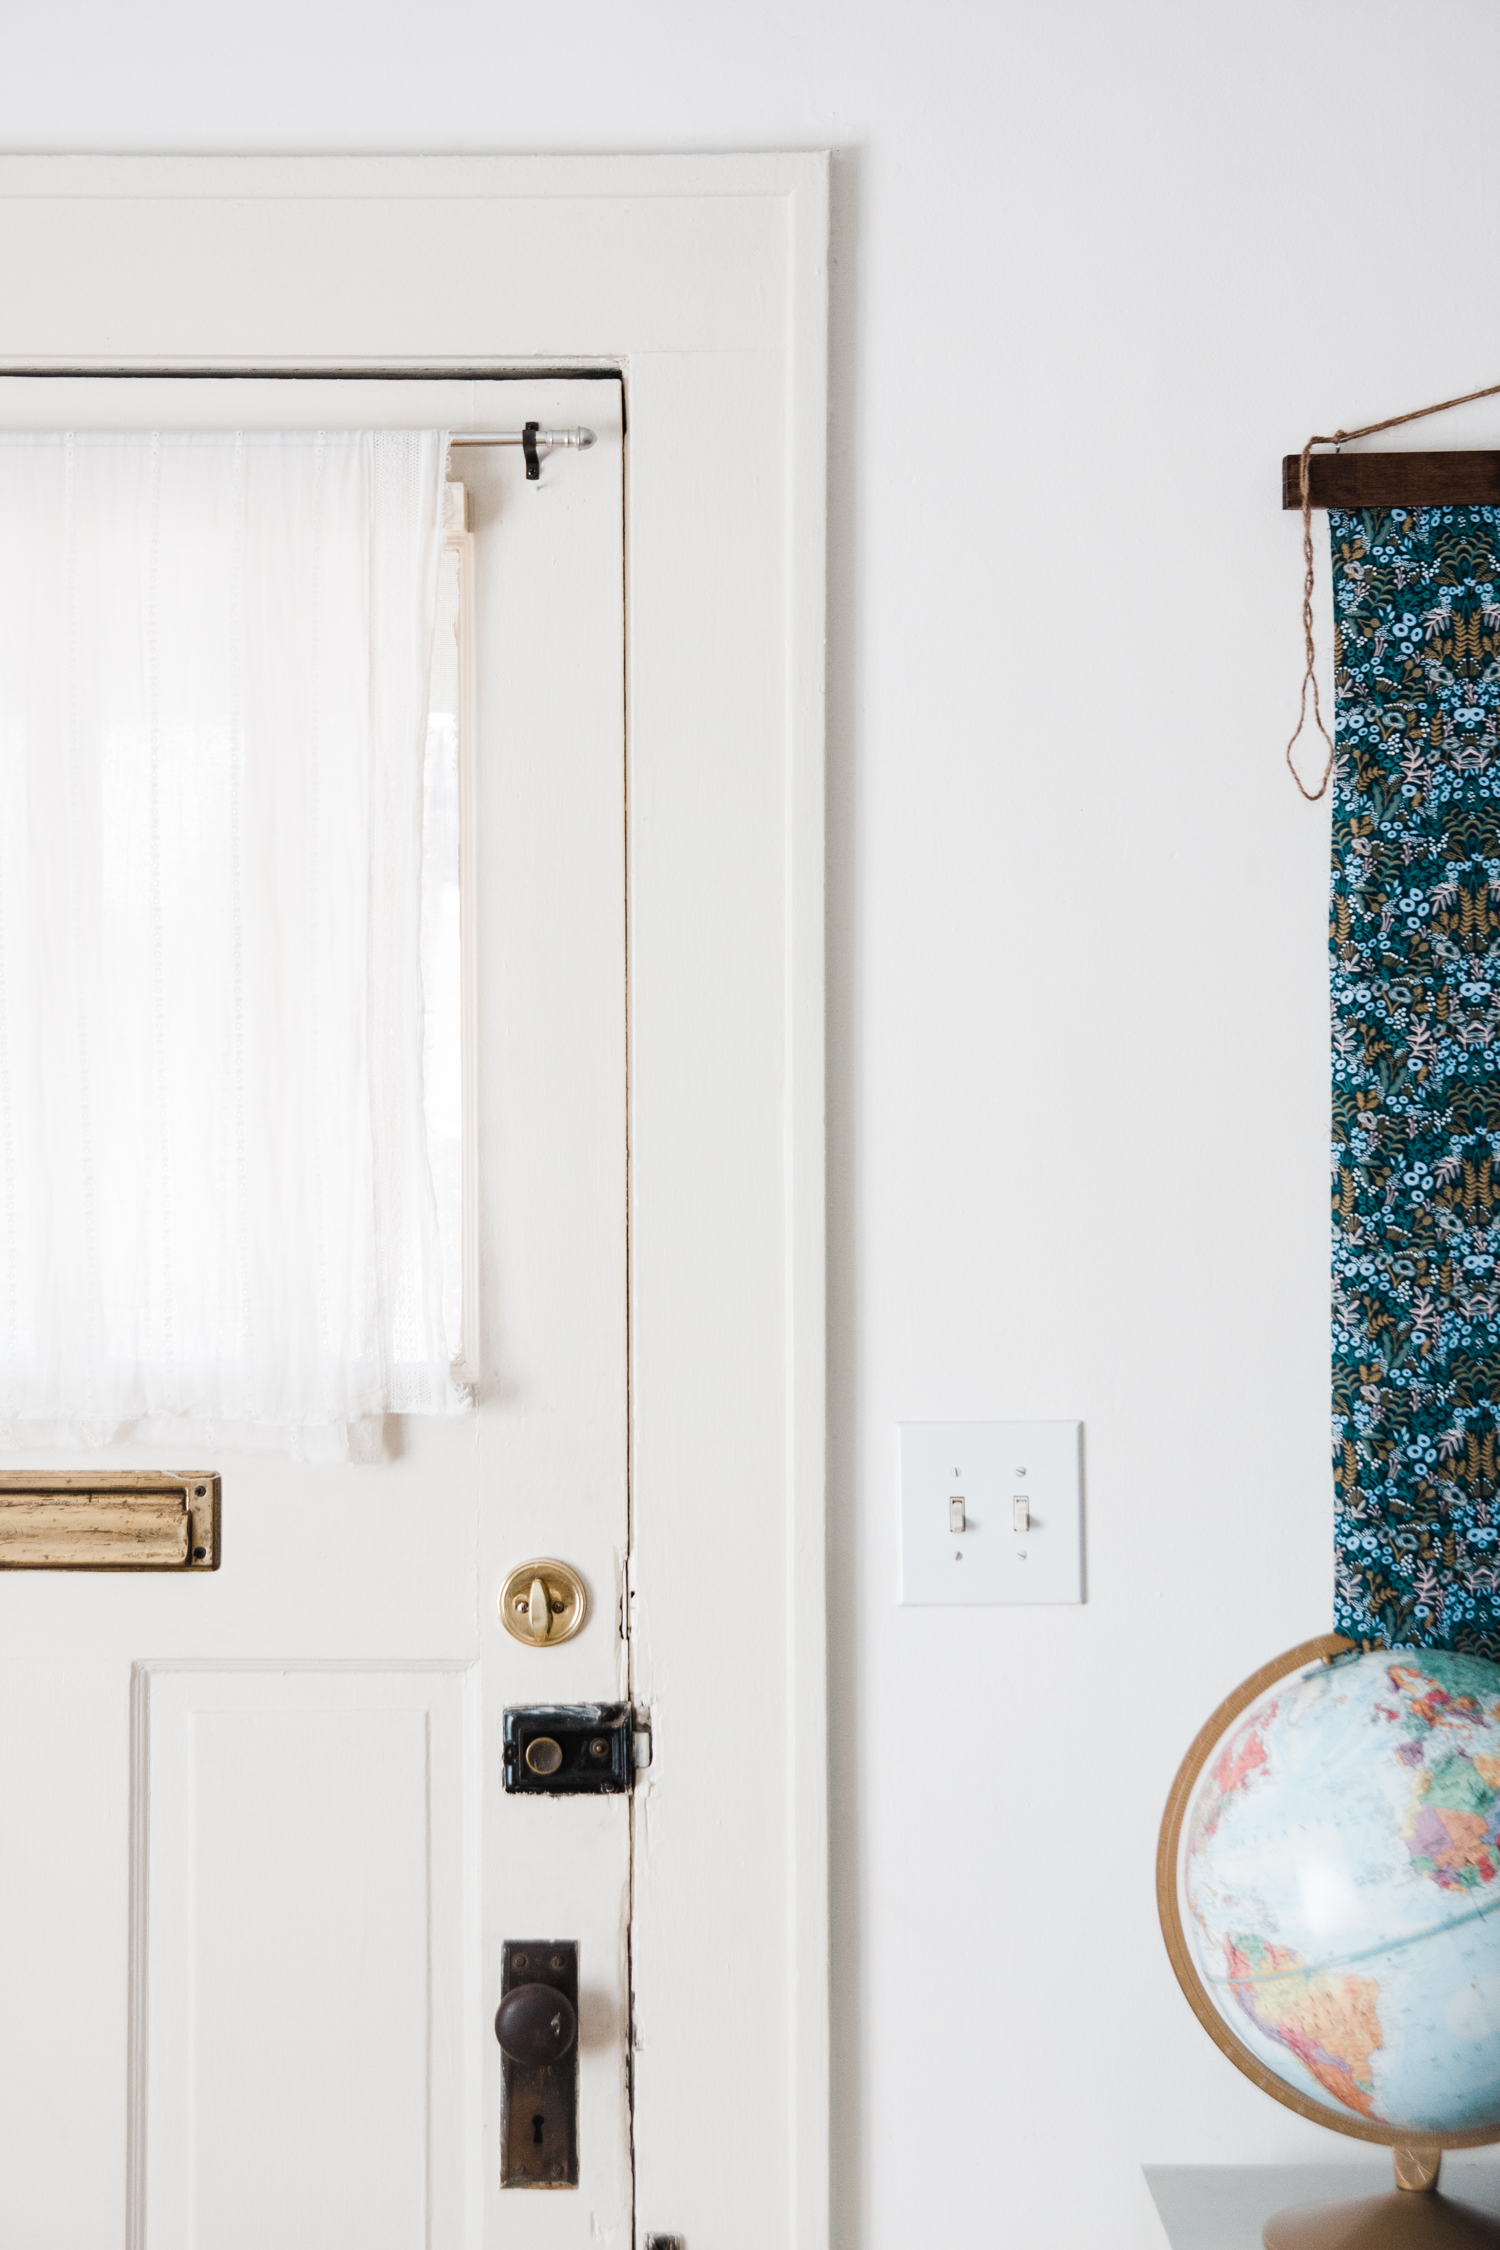 Emily draped a simple vintage scarf over the window of her front door for privacy.